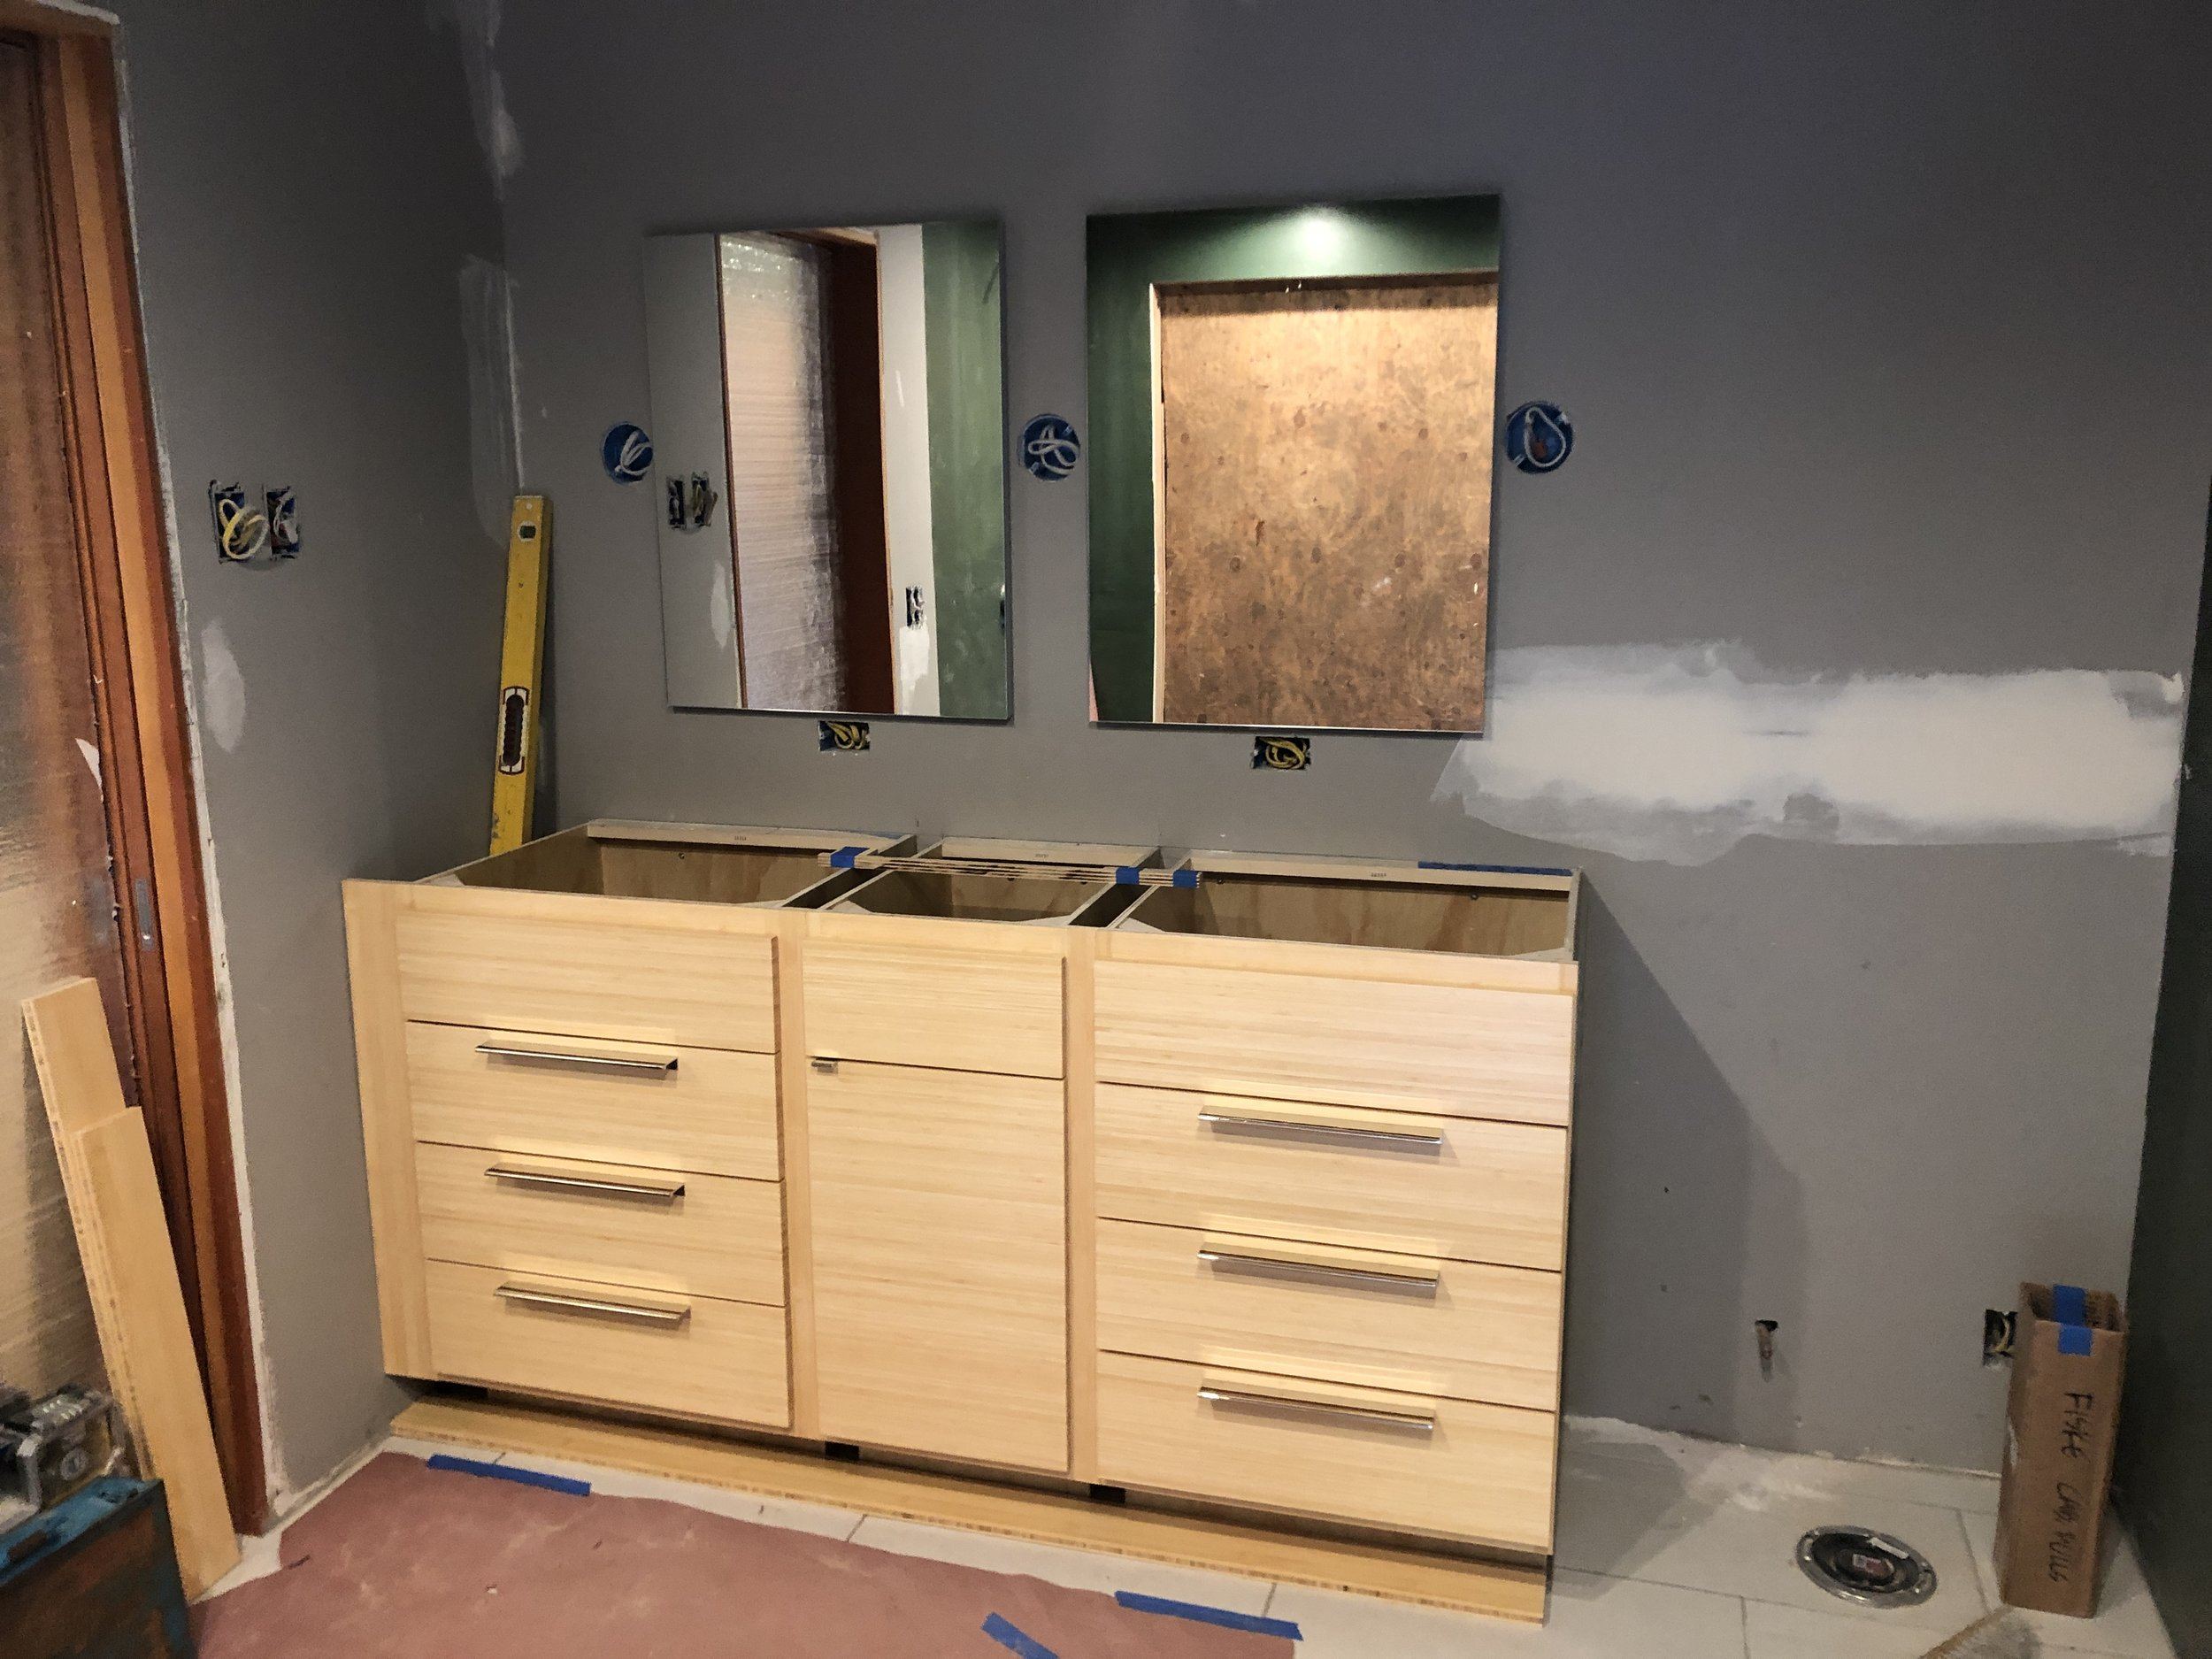 Bamboo is alive and well, and look how much light and warmth it brings to what will be a stunning master bathroom!